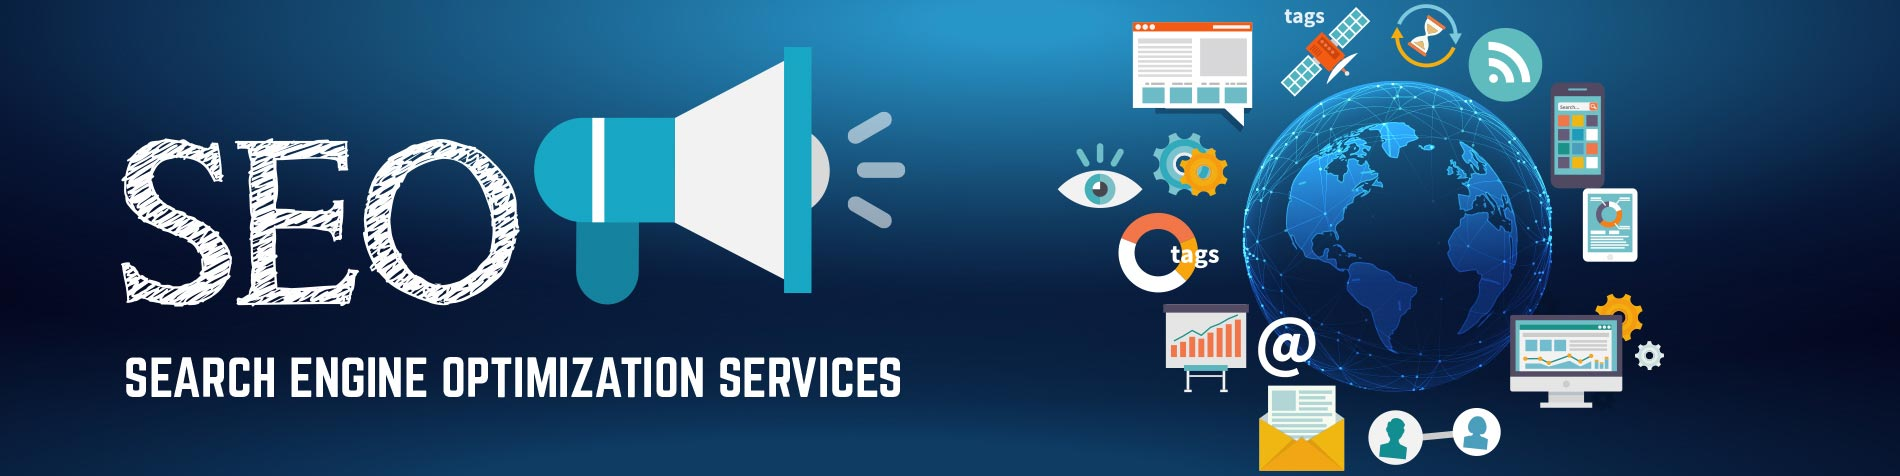 Search Engine Optimization services Noida v2infotech